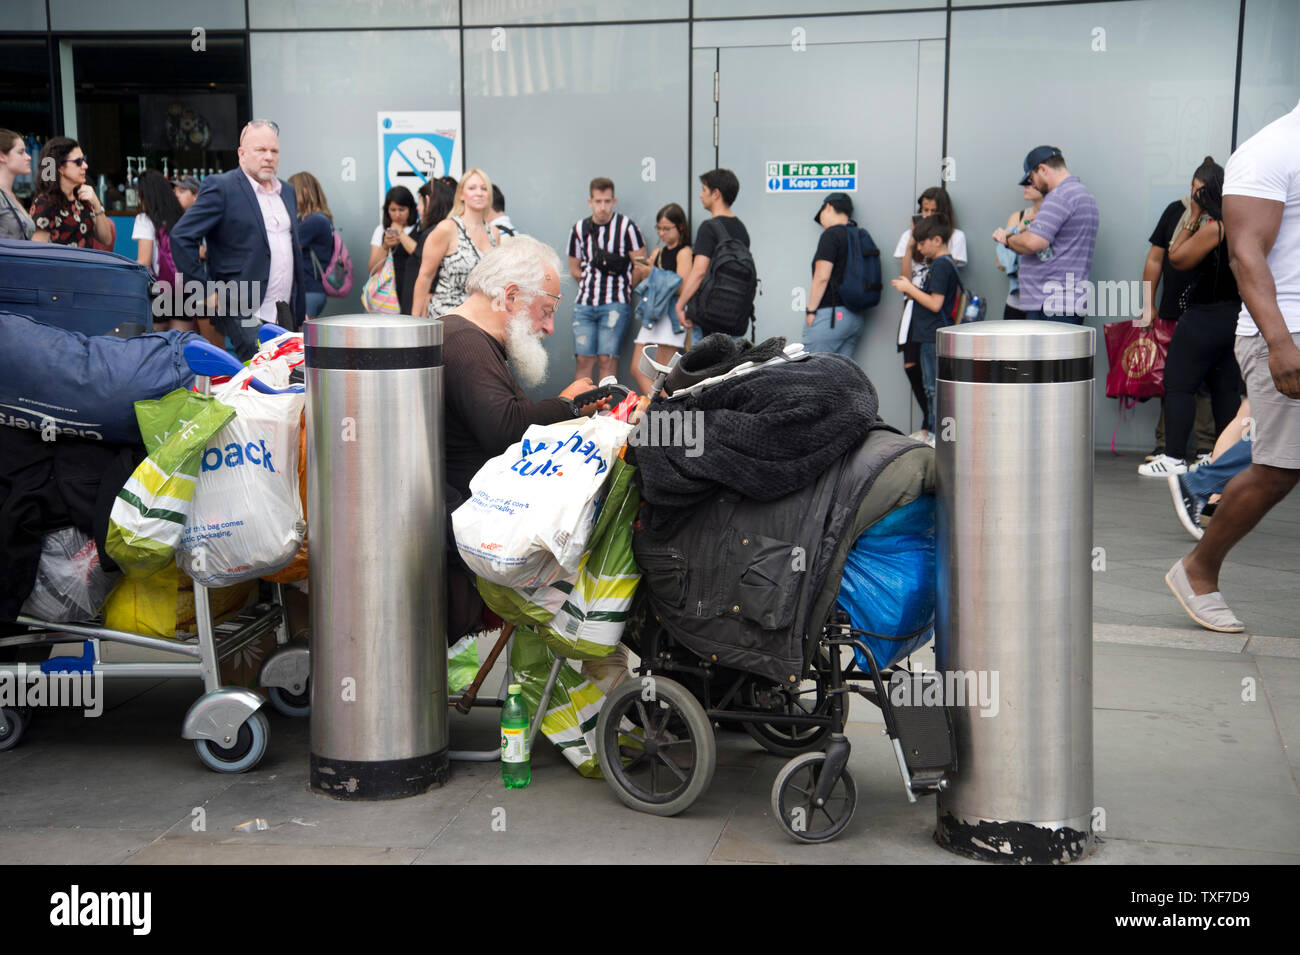 London, Kings Cross. A homeless elderly man with his possessions on trolleys in front of the queue of Harry Potter fans. - Stock Image